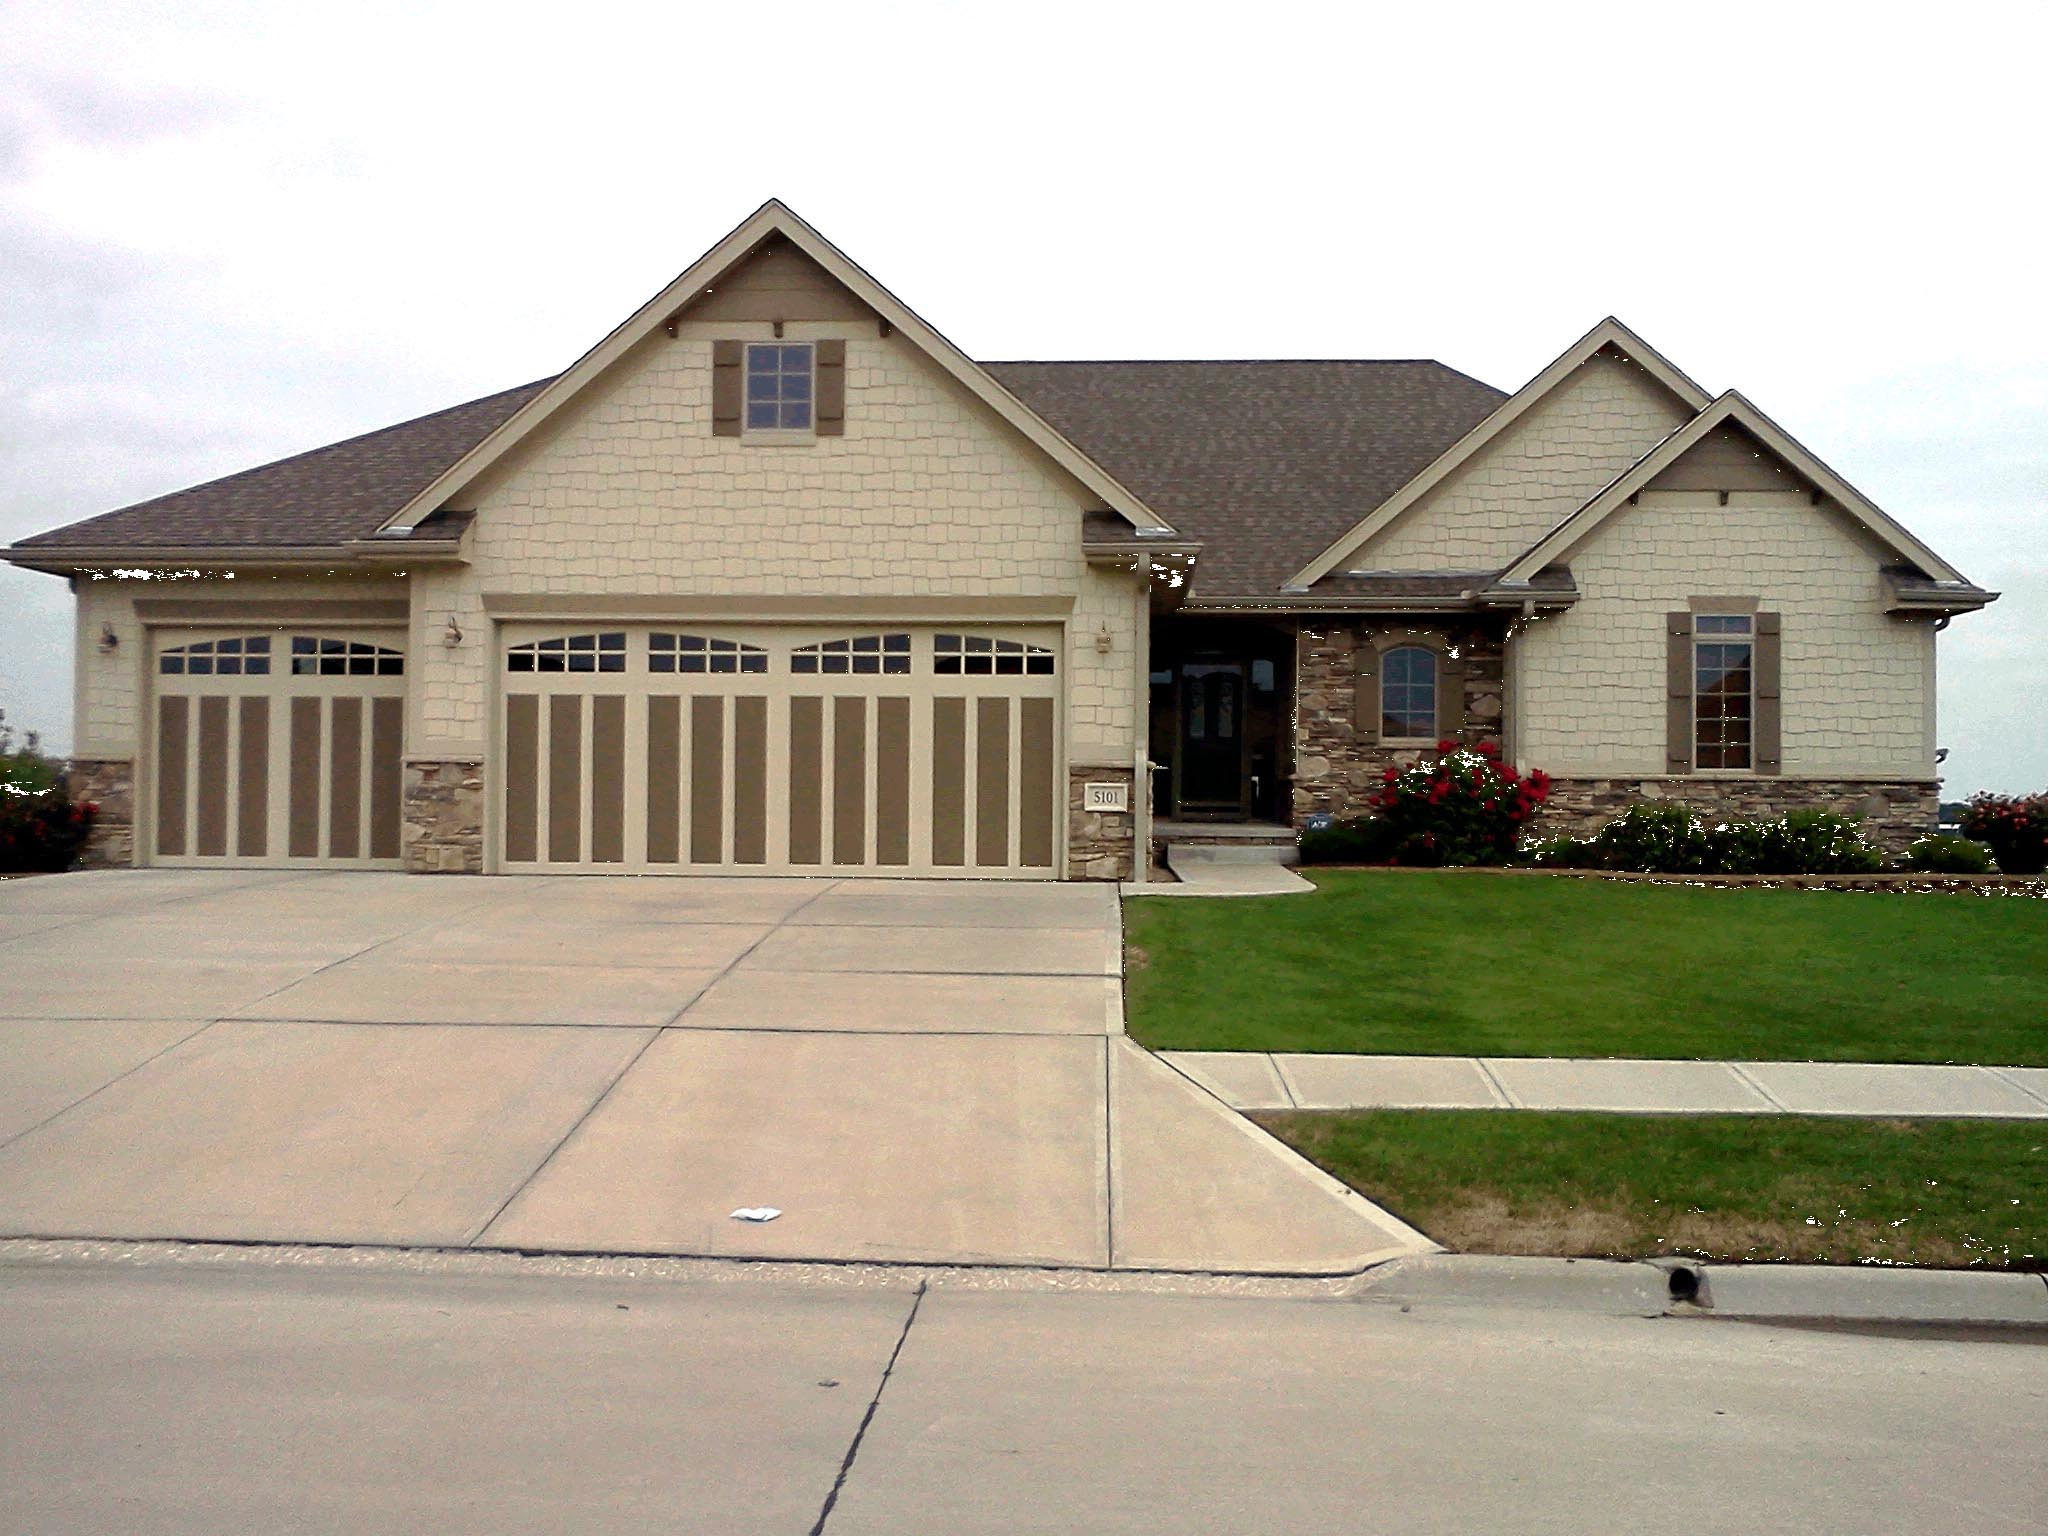 European House Plan 66687 with 3 Beds, 2 Baths, 3 Car Garage Picture 1